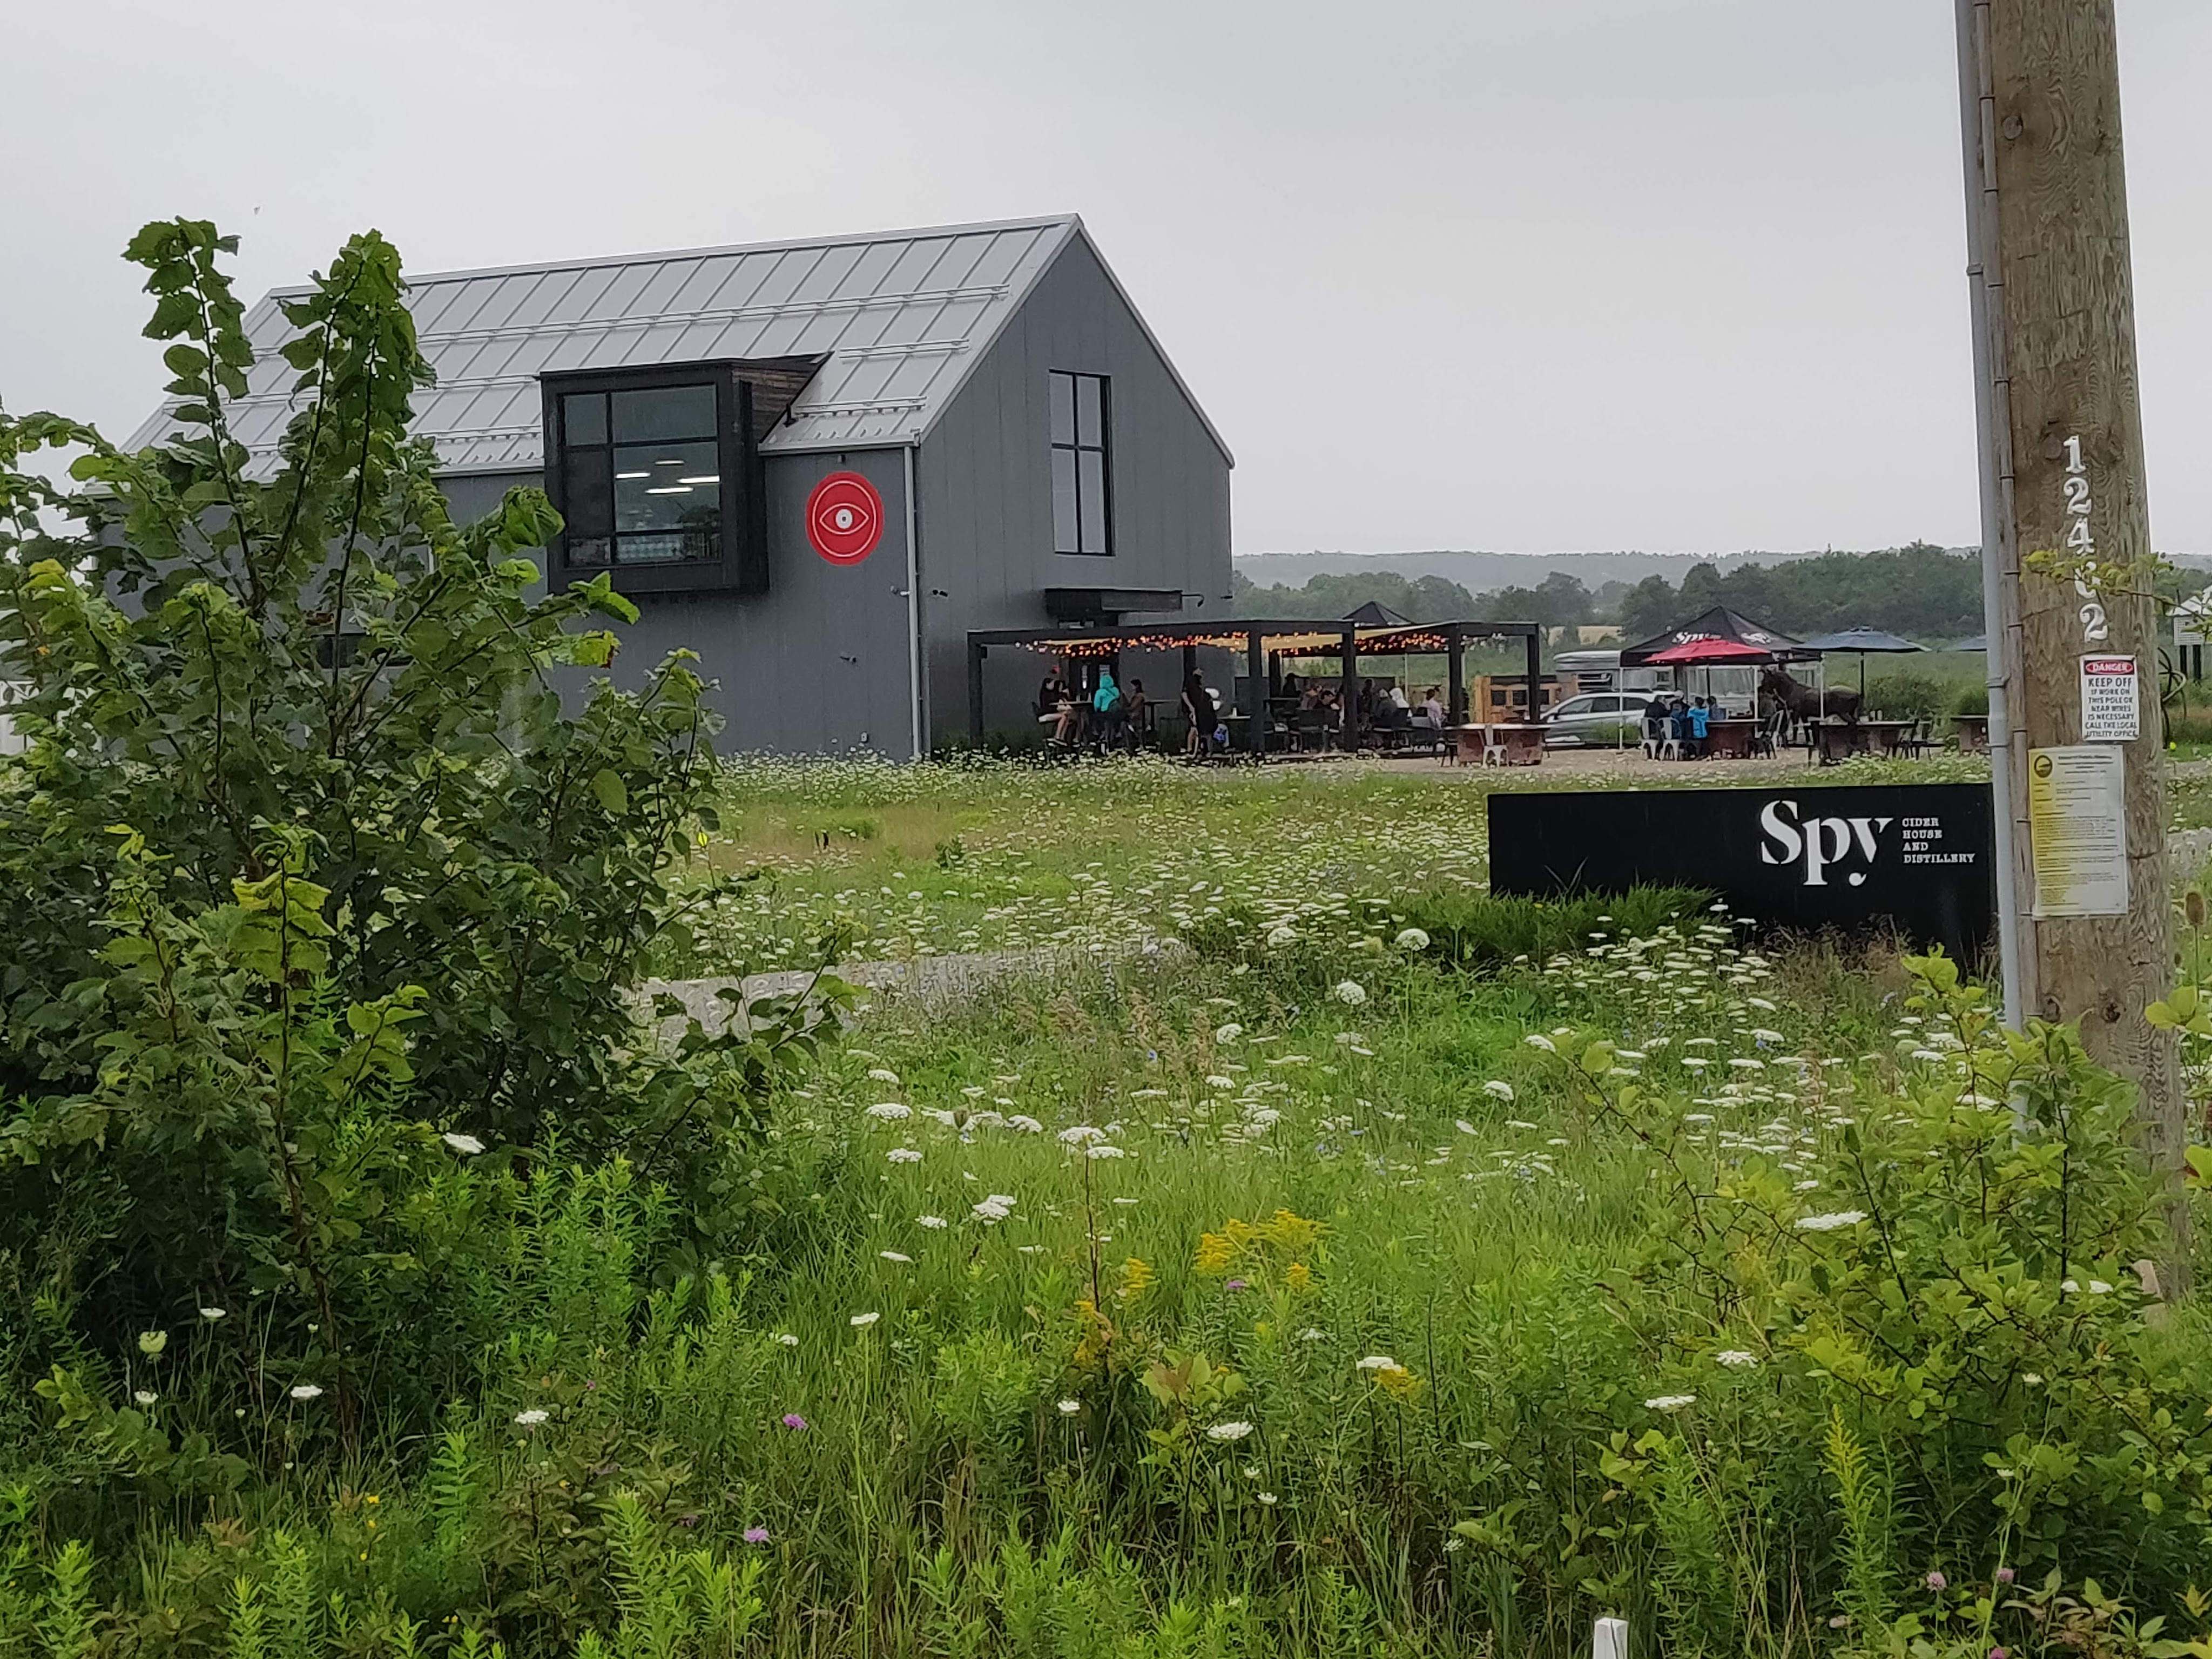 The SPY Cider house and distillery is a gray barh-shaped building in the background with large windows and solar panels on the roof. In the parking lot beside the building there  is a patio set up for patrons. Tables are made with plywood over apple harvest bins with the farm name stamped on the side. The SPY Cider sign is off the side of the driveway. The area between the road and driveway and the parking lot and building are meadow, there are several flowers blooming, including Queen Anne's lace and goldenrod.